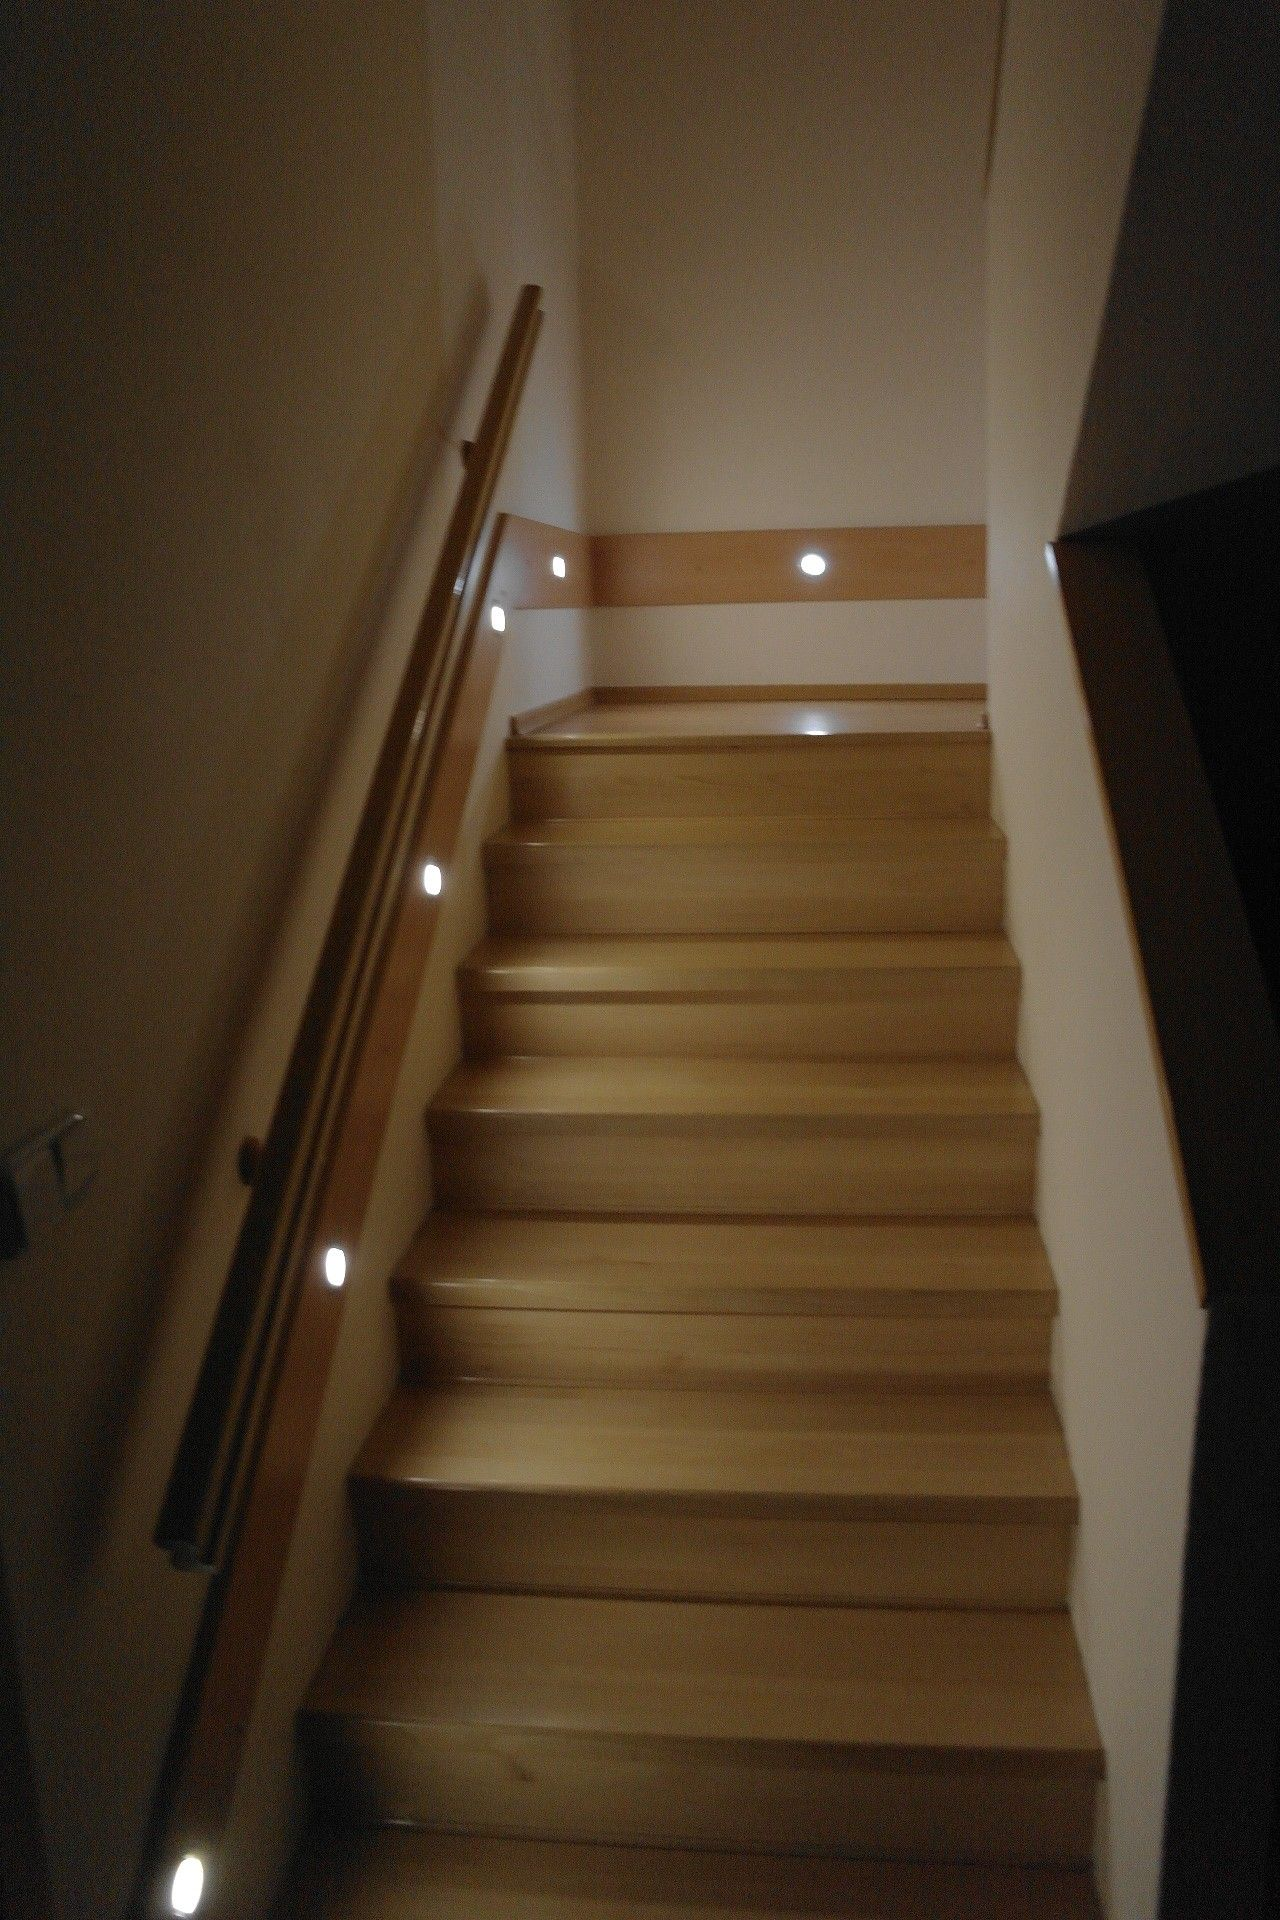 Led Light On Stairs With Motion Sensor And Timer